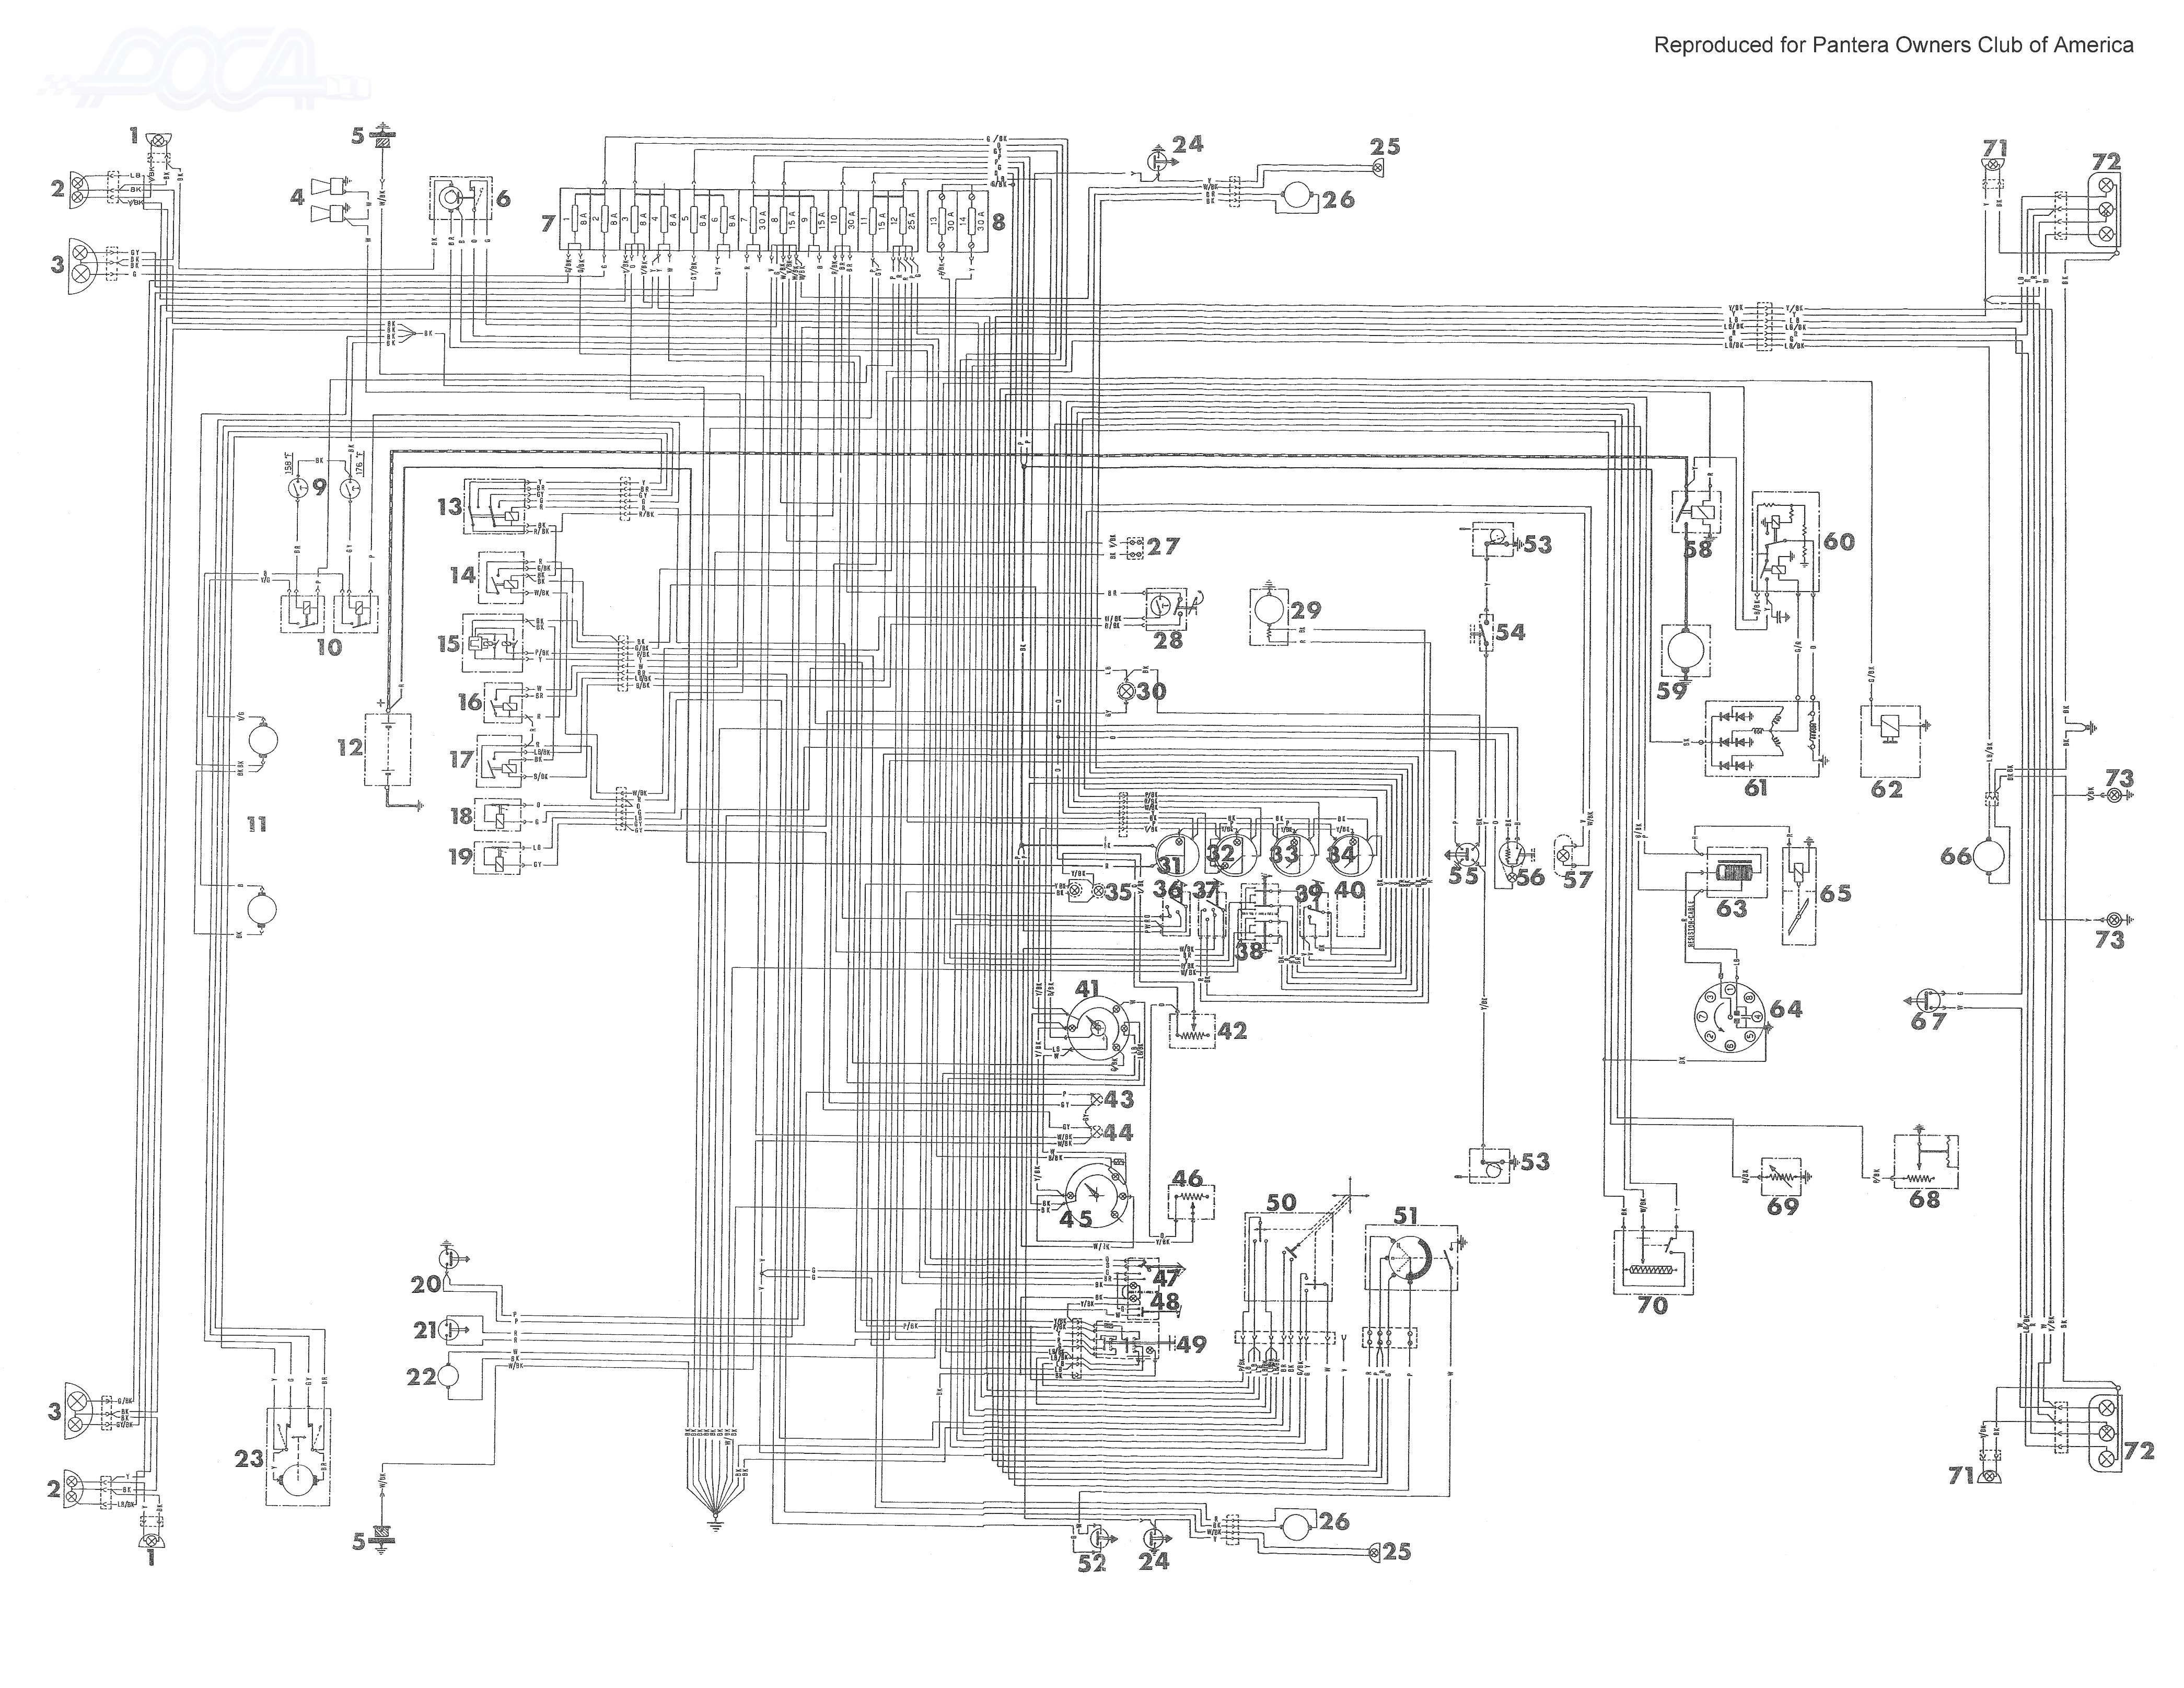 De+Tomaso+L+Schematic+Wiring+Diagram?t\=1508404309 iveco usa wiring diagrams wiring diagrams acco 2350g wiring diagram at mifinder.co